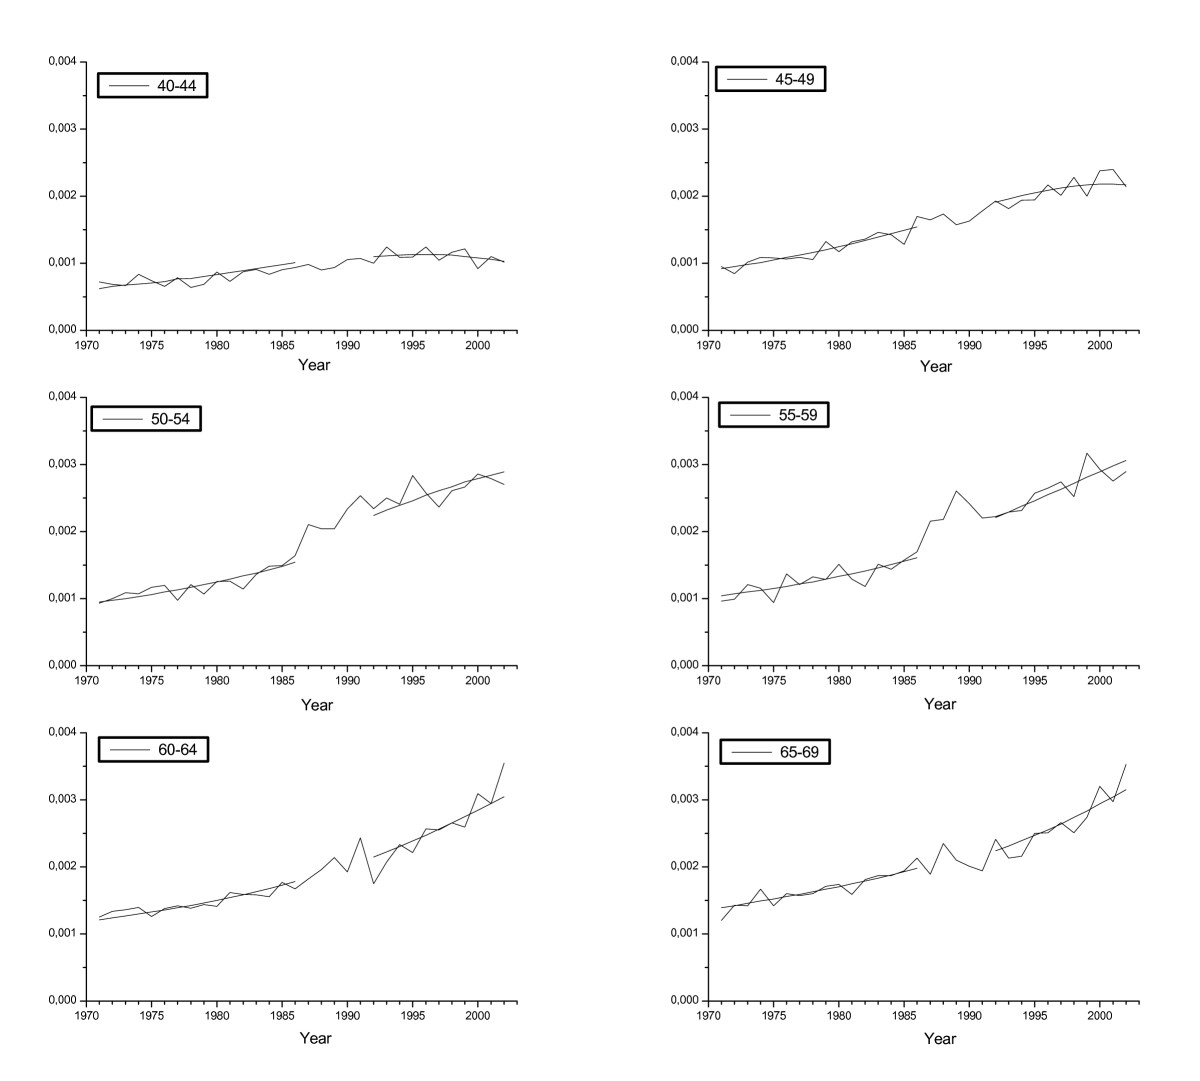 http://static-content.springer.com/image/art%3A10.1186%2F1471-2458-8-38/MediaObjects/12889_2007_Article_1008_Fig2_HTML.jpg